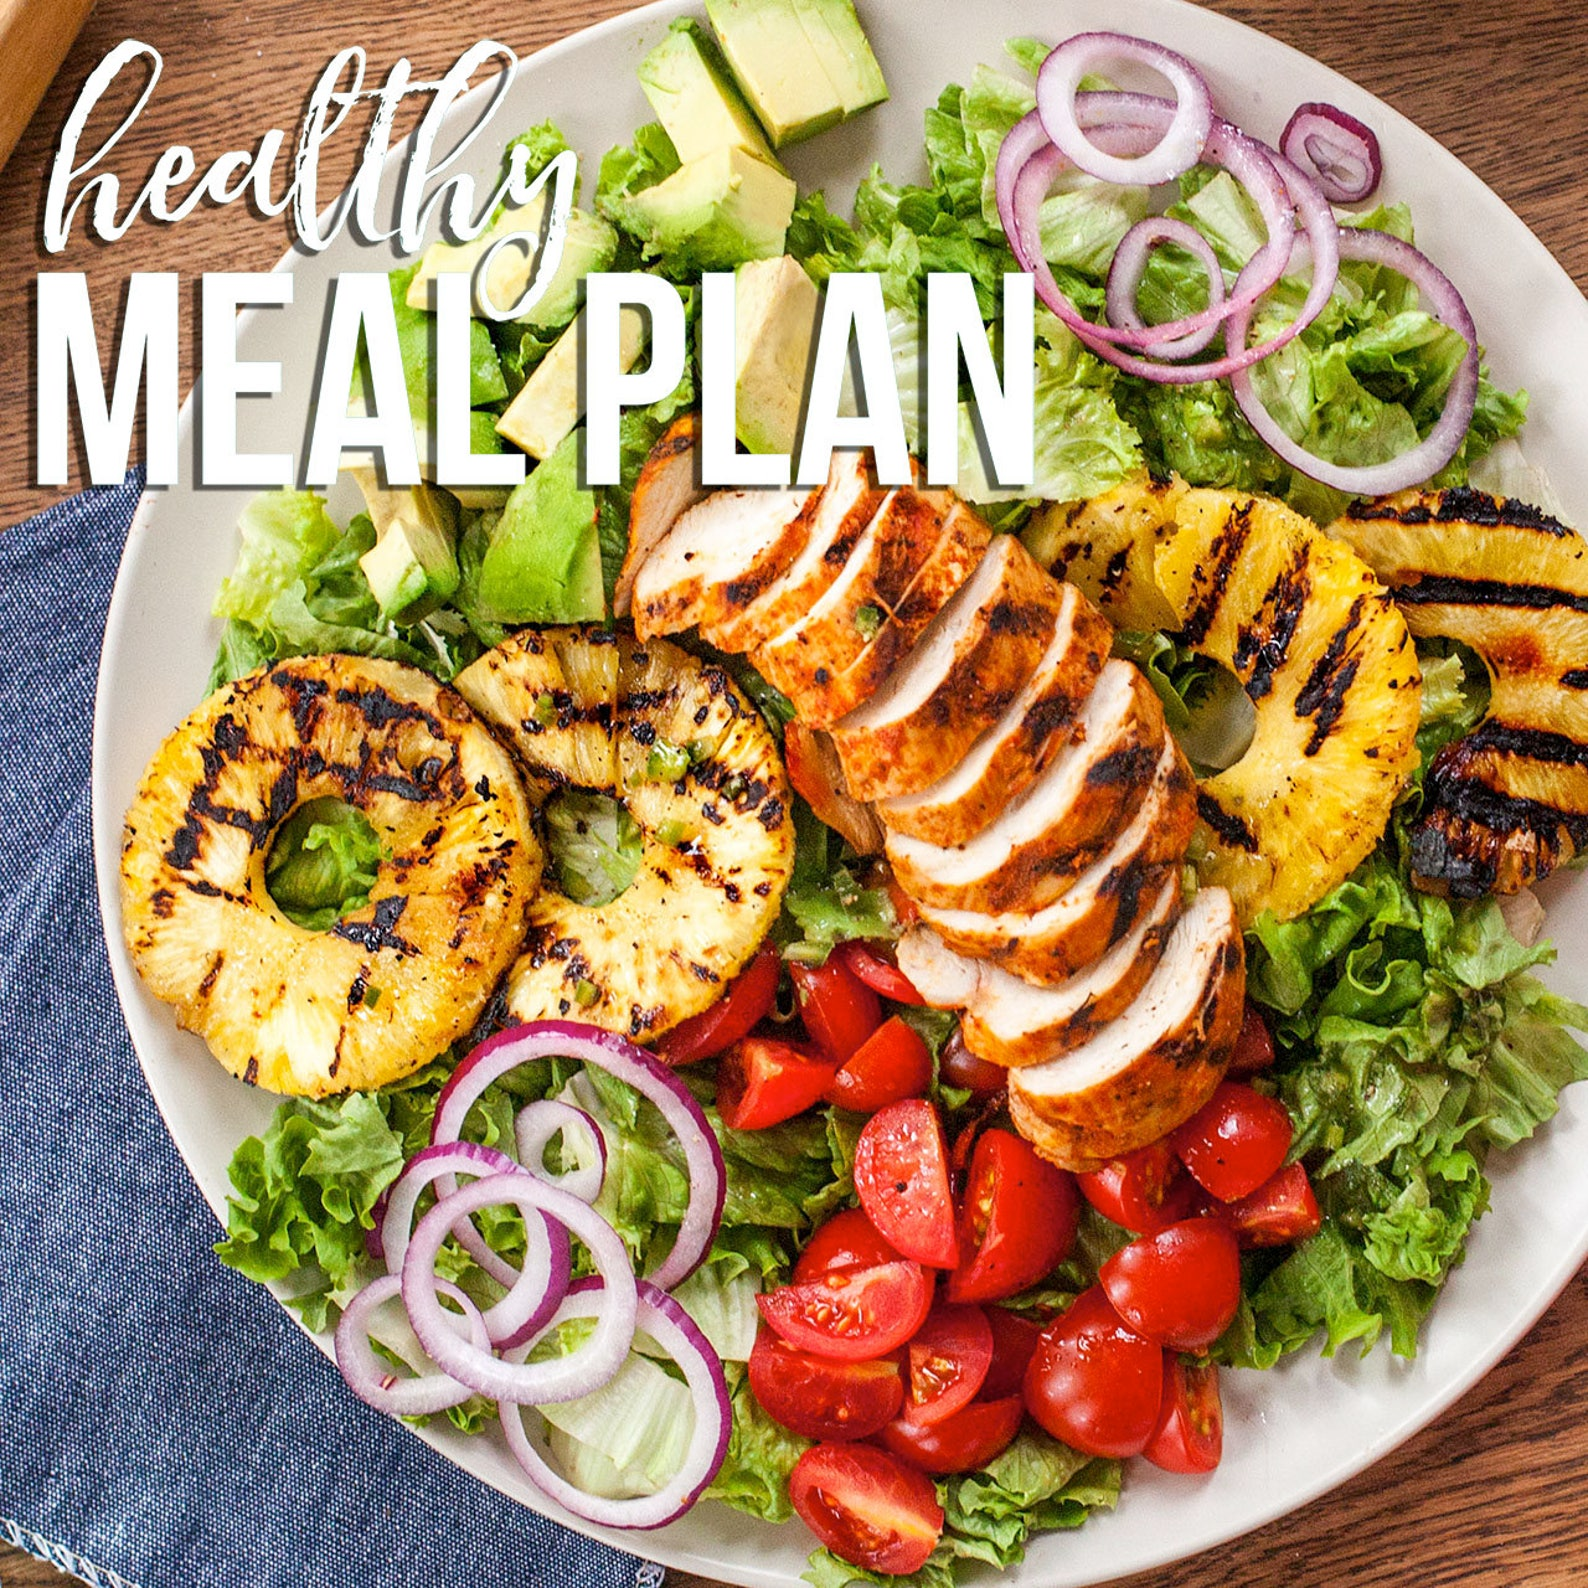 custom meal plan bundles - HD 1588×1588